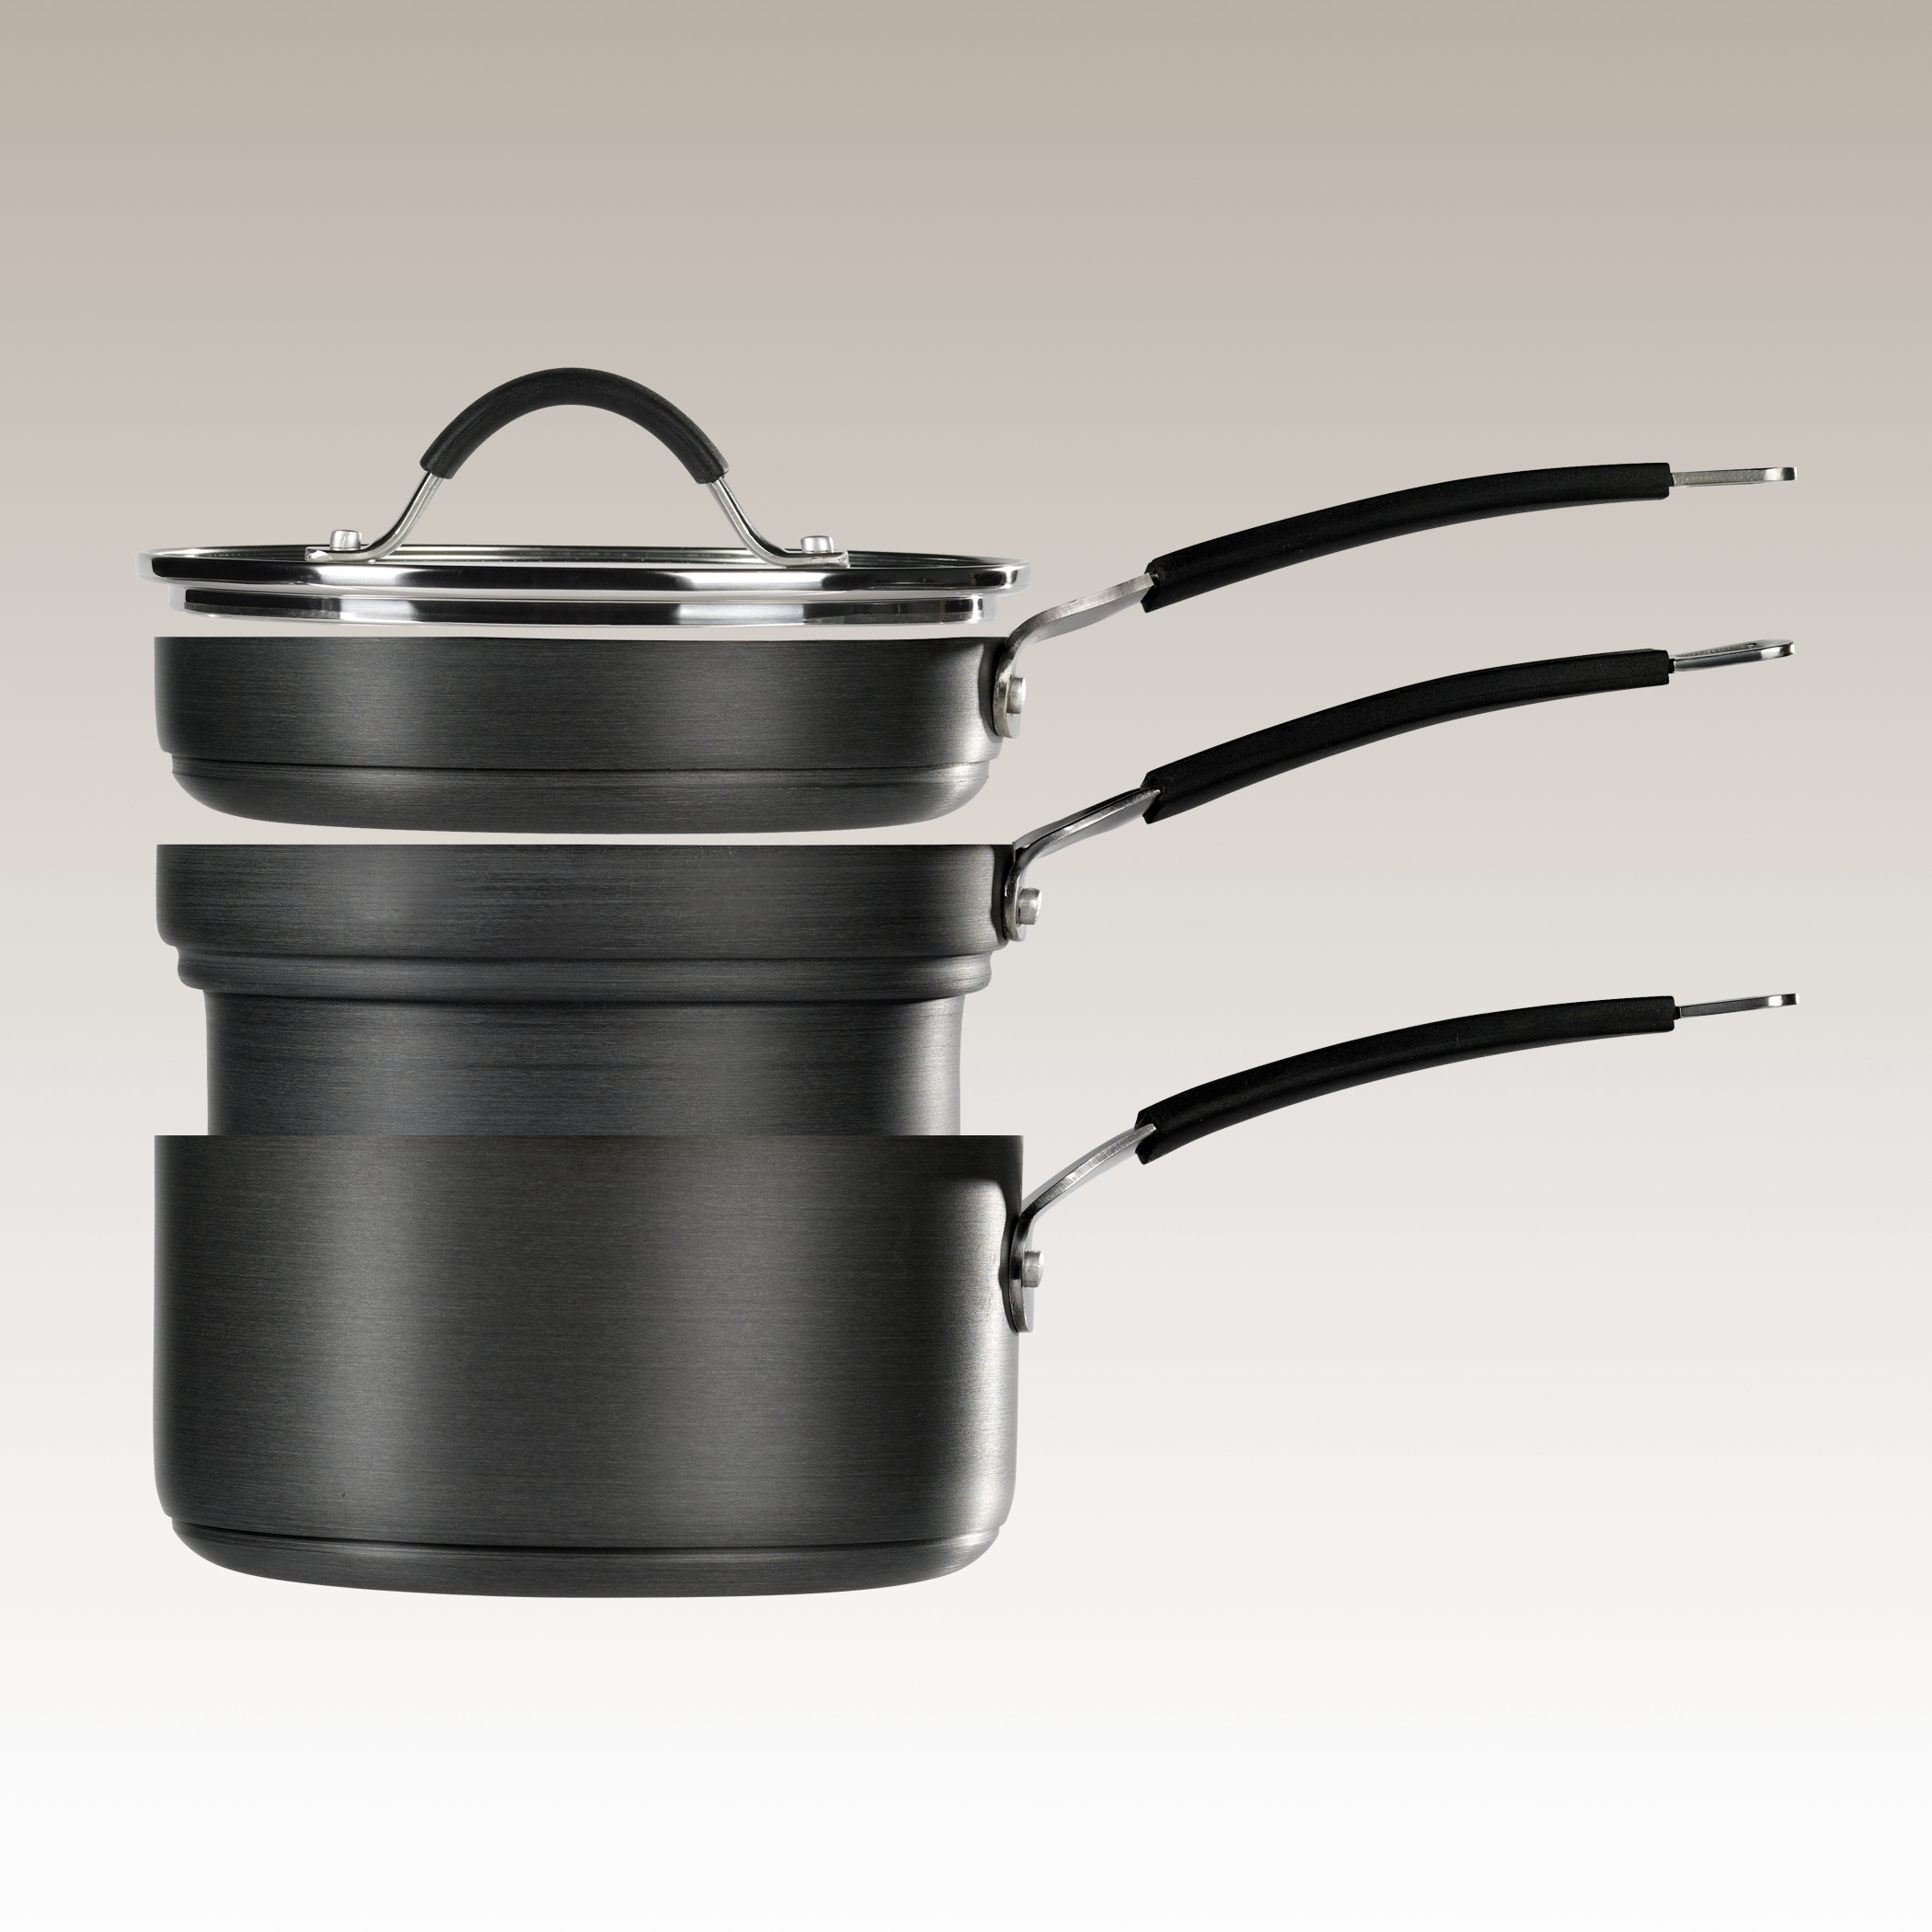 Piece Space Efficient Non-Stick Hard Anodized Multi-function Cooking System by Stax Living.